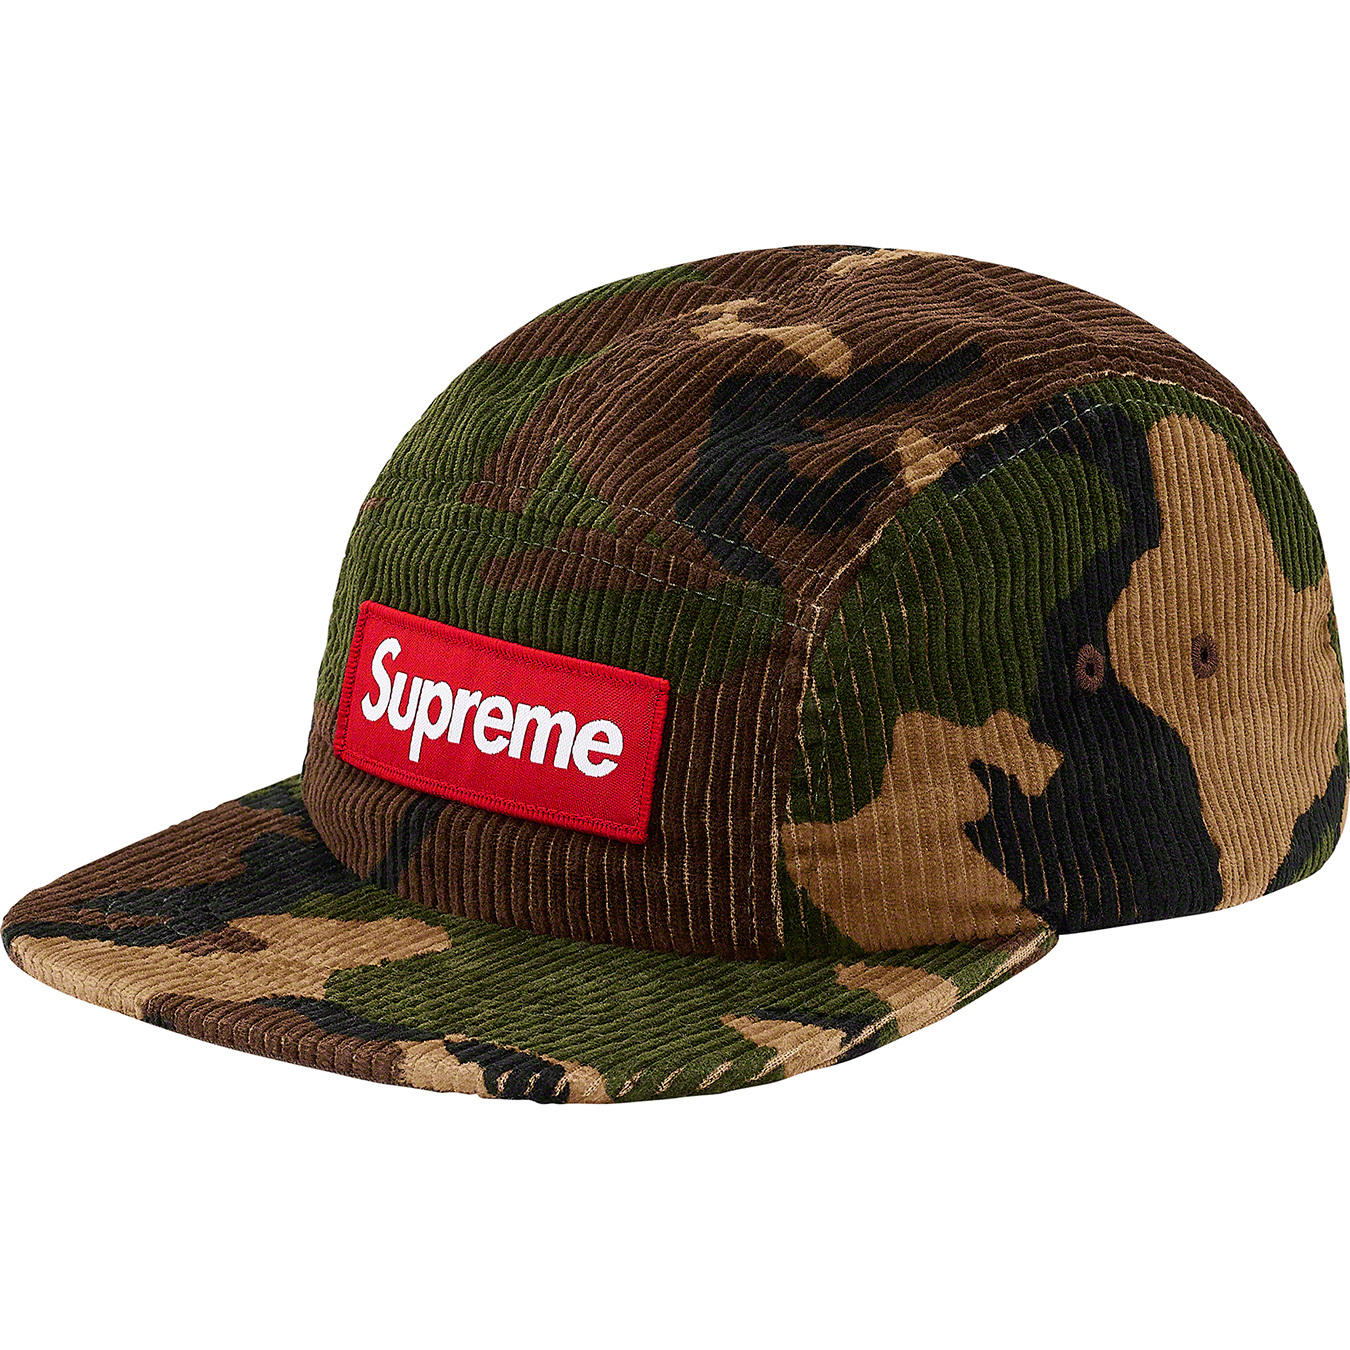 supreme-19aw-19fw-fall-winter-camo-corduroy-camp-cap